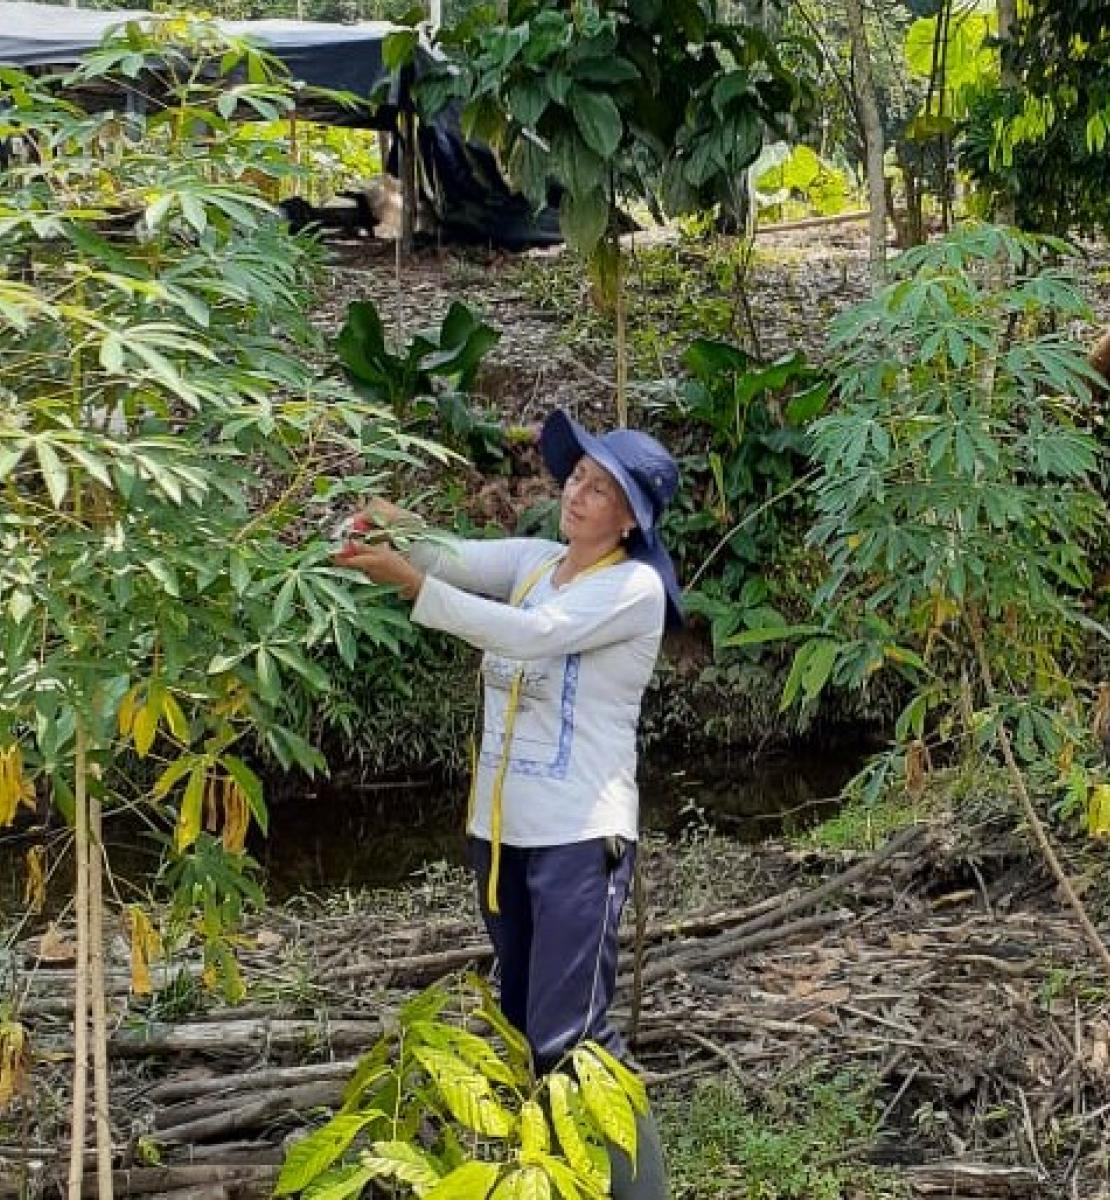 A woman in a blue hat and a white shirt collects crops from a tree.